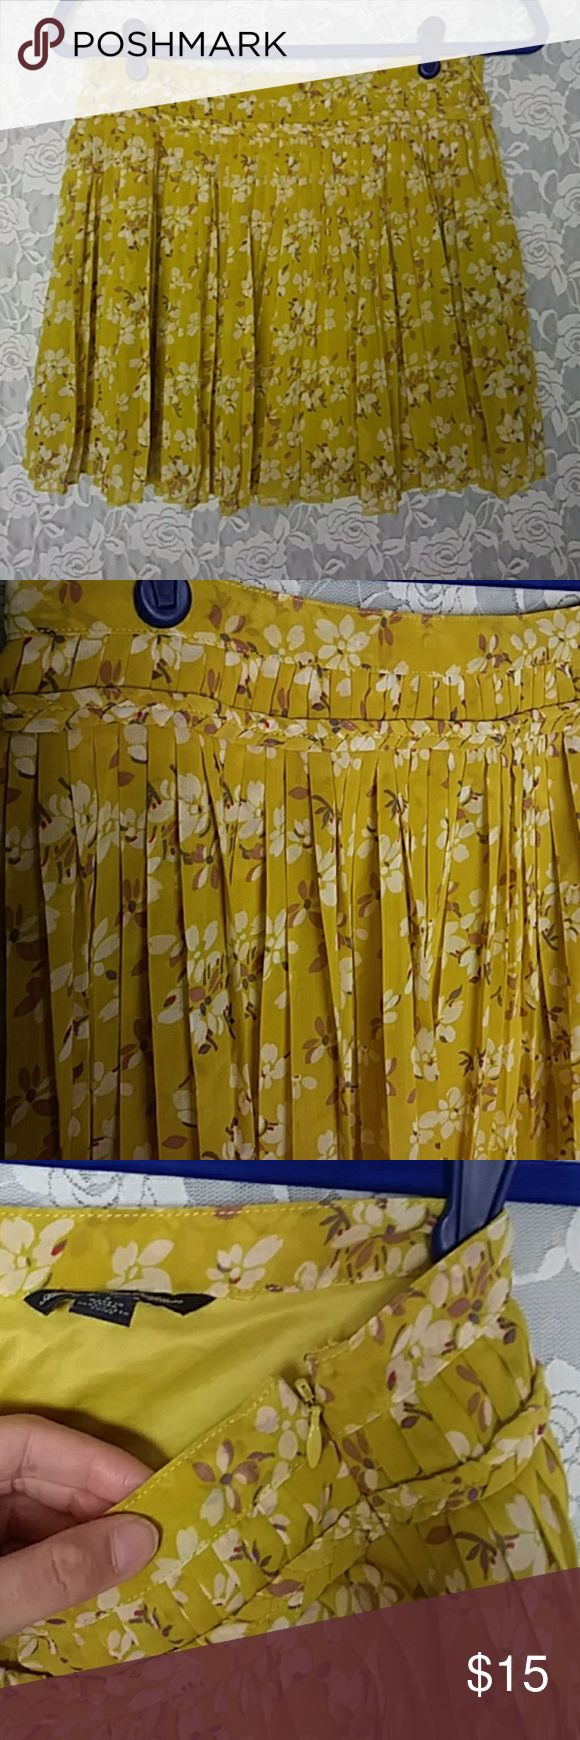 "American Eagle Outfitter Pleated Floral Mini Skirt American Eagle Outfitters  Juniors size 2 Olive color Pleated Floral Mini Skirt Length: 14.5"" Great condition American Eagle Outfitters Skirts Mini"